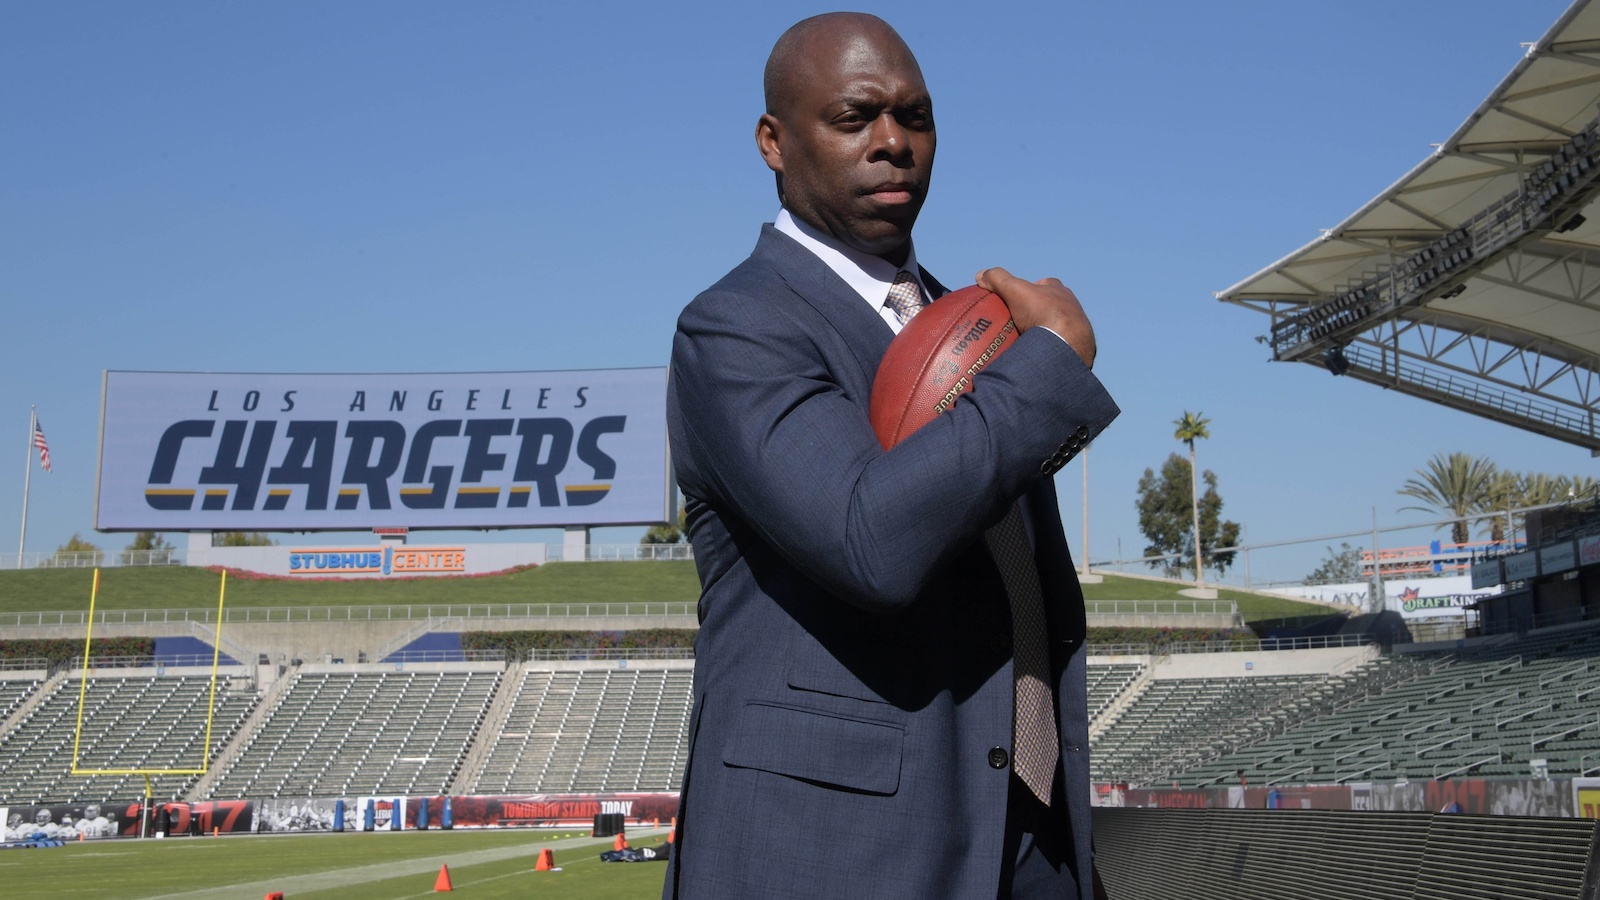 020717-NFL-Chargers-Anthony-Lynn